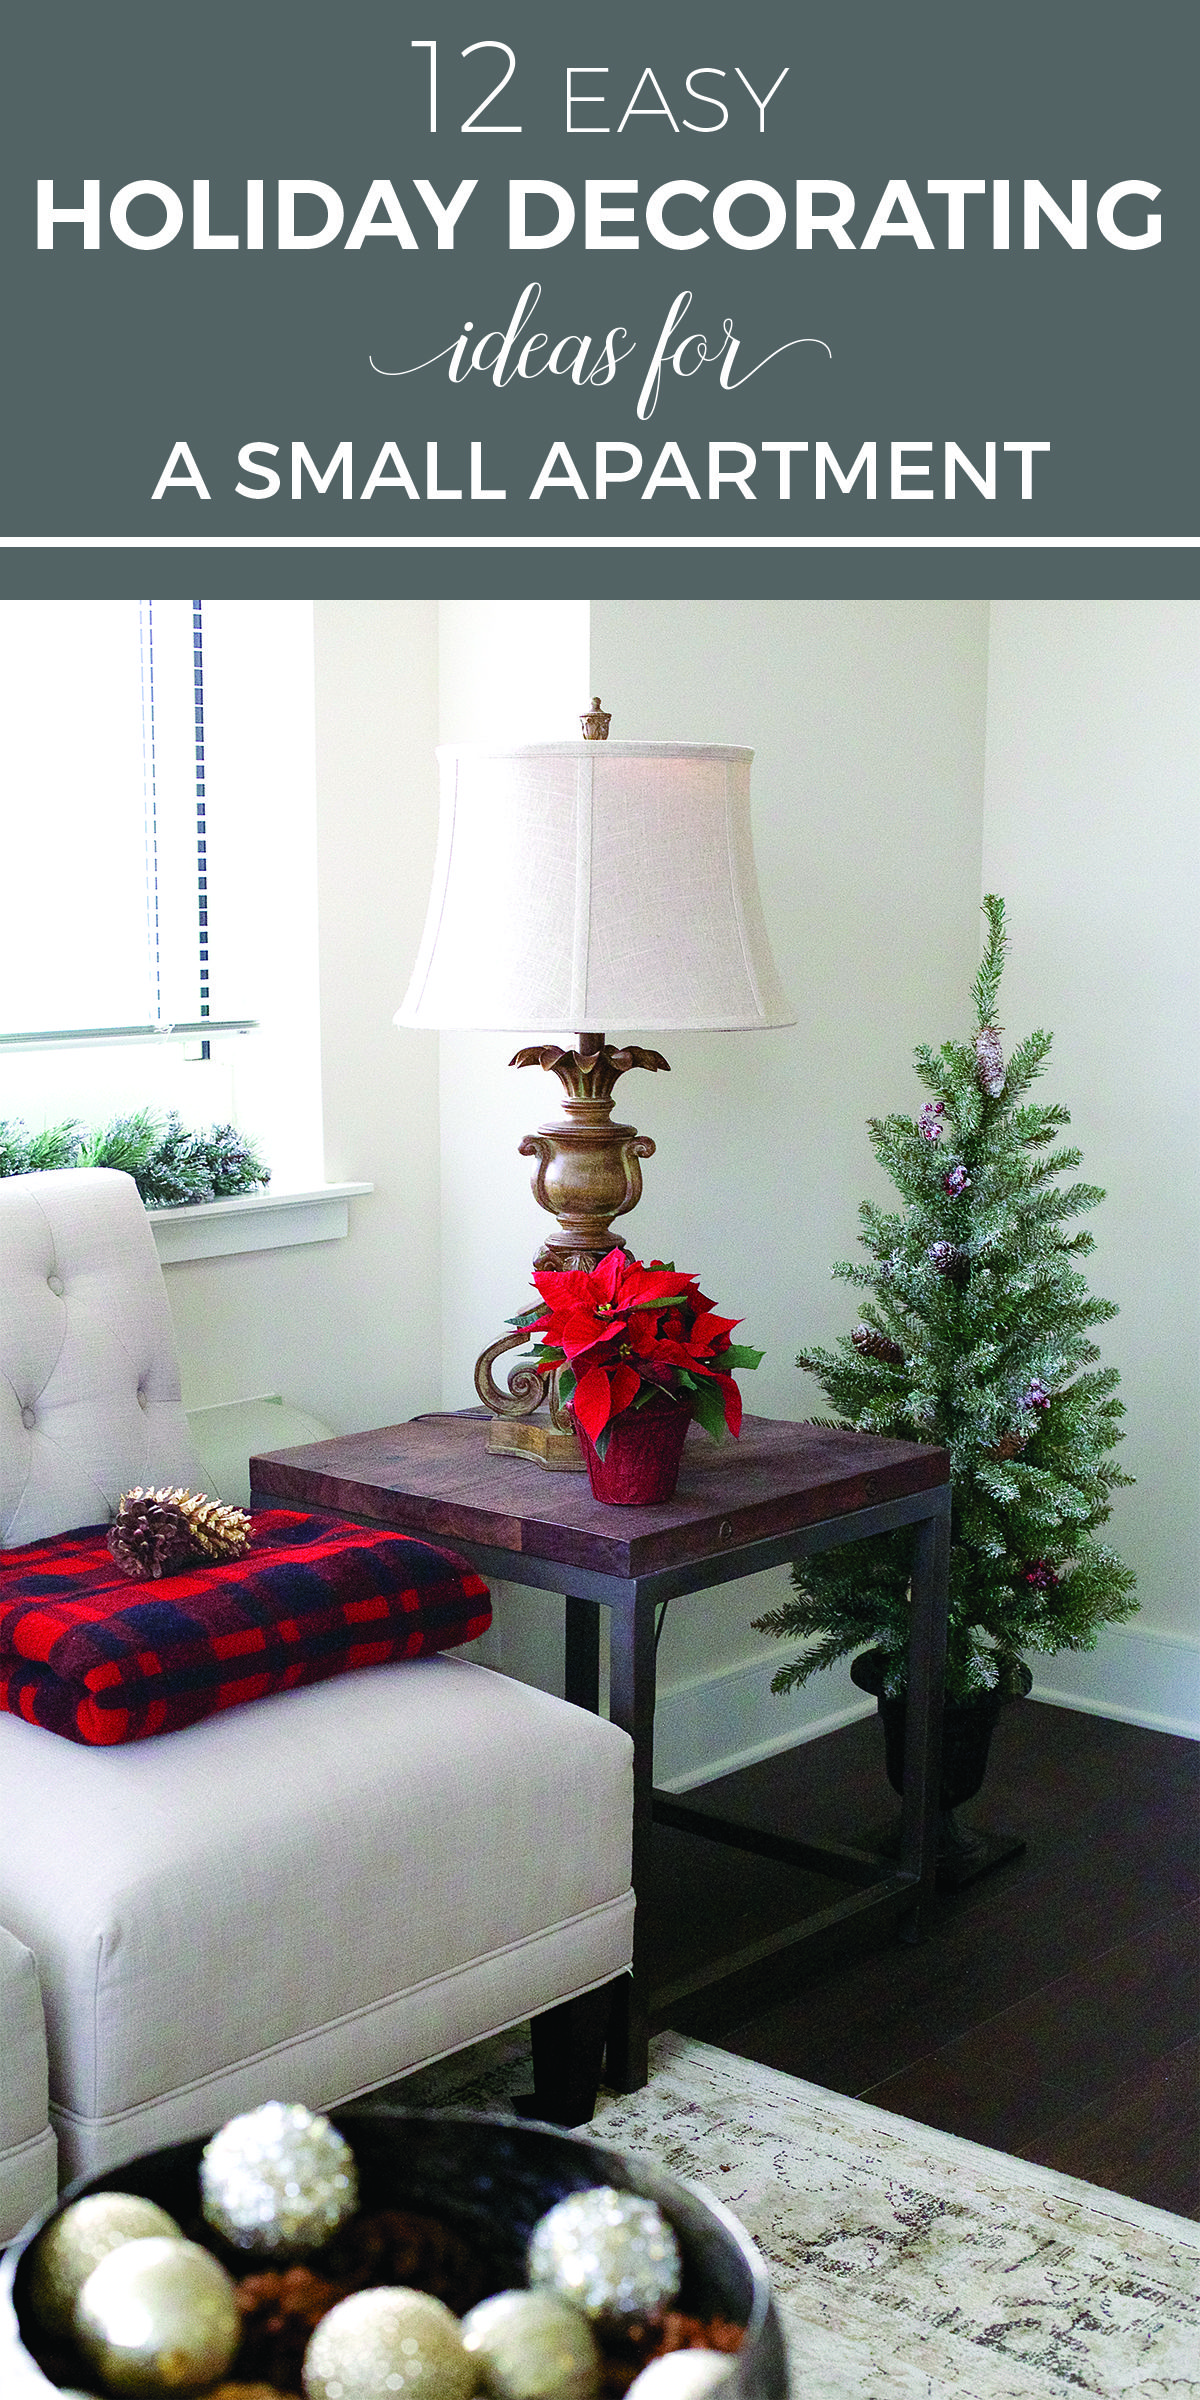 12 Easy Holiday Decorating Ideas For A Small Apartment Apart